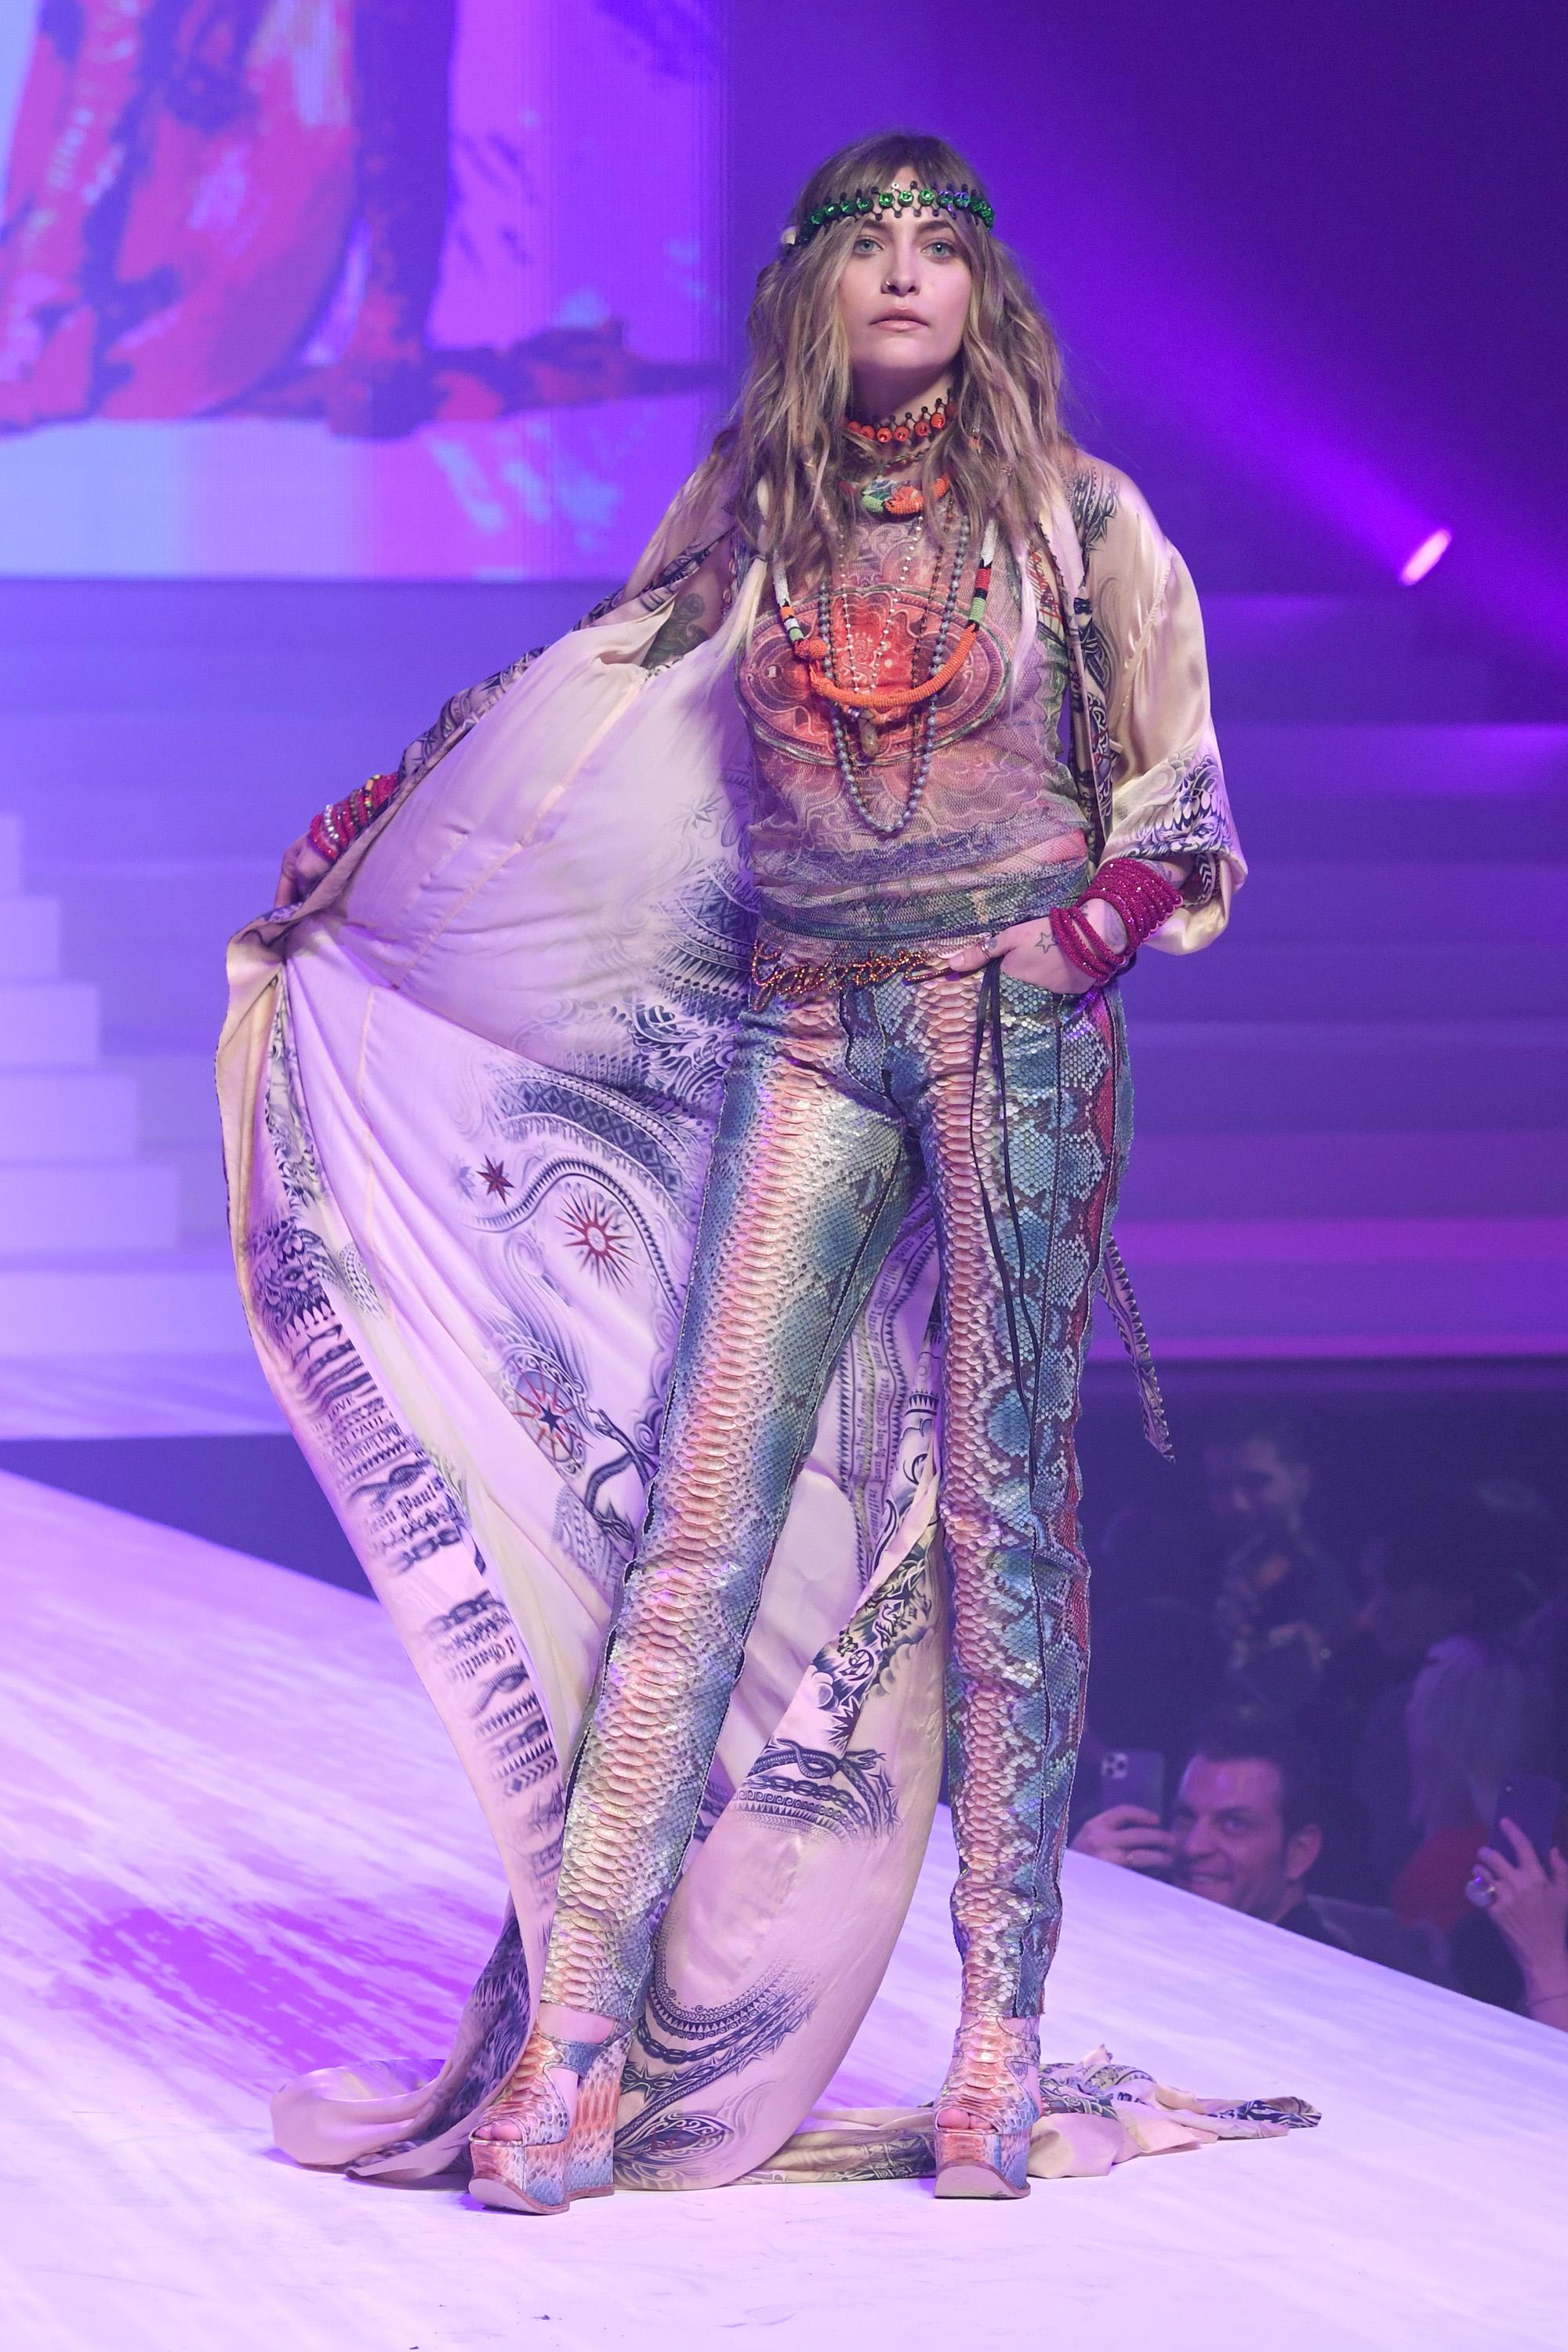 Paris Jackson walks the runway during the Jean-Paul Gaultier Haute Couture Spring/Summer 2020 show as part of Paris Fashion Week at Theatre Du Chatelet on January 22, 2020 in Paris, France. [Photo: Getty]